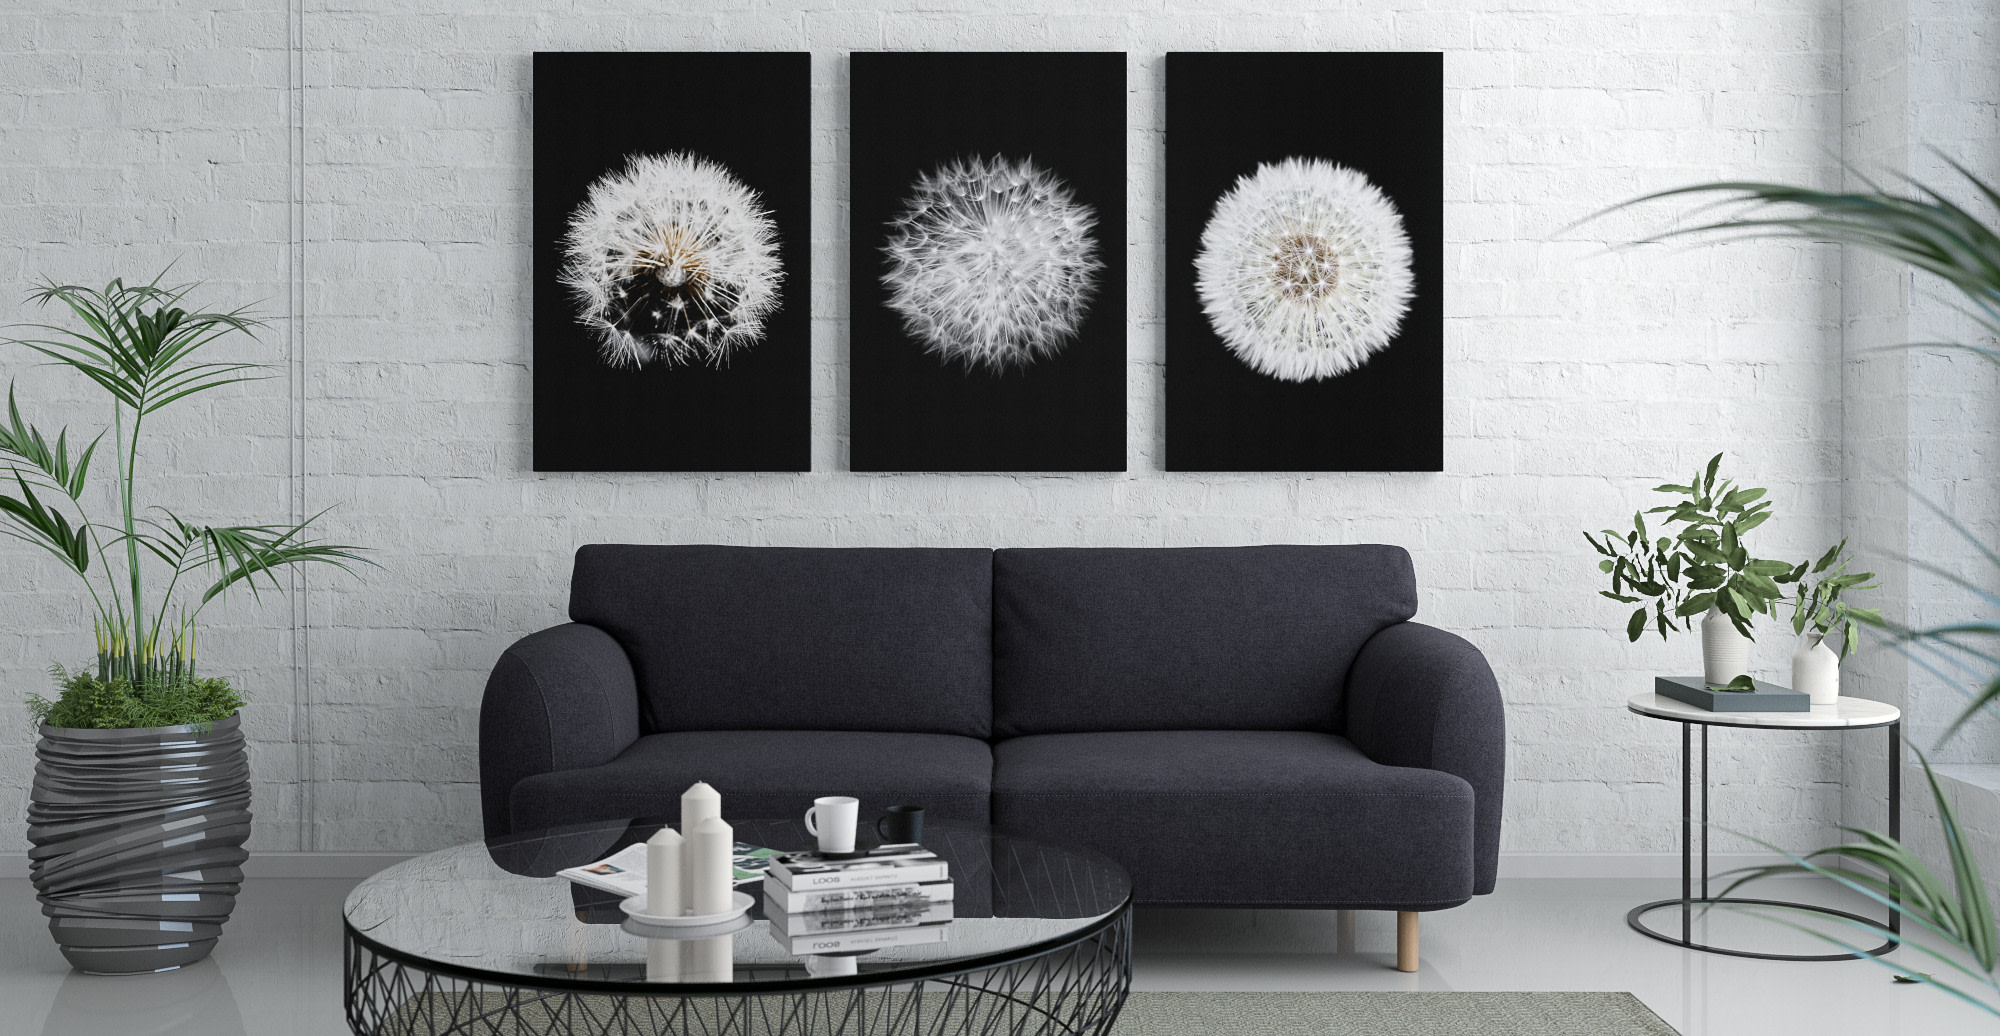 Tips to get the best wall art for you